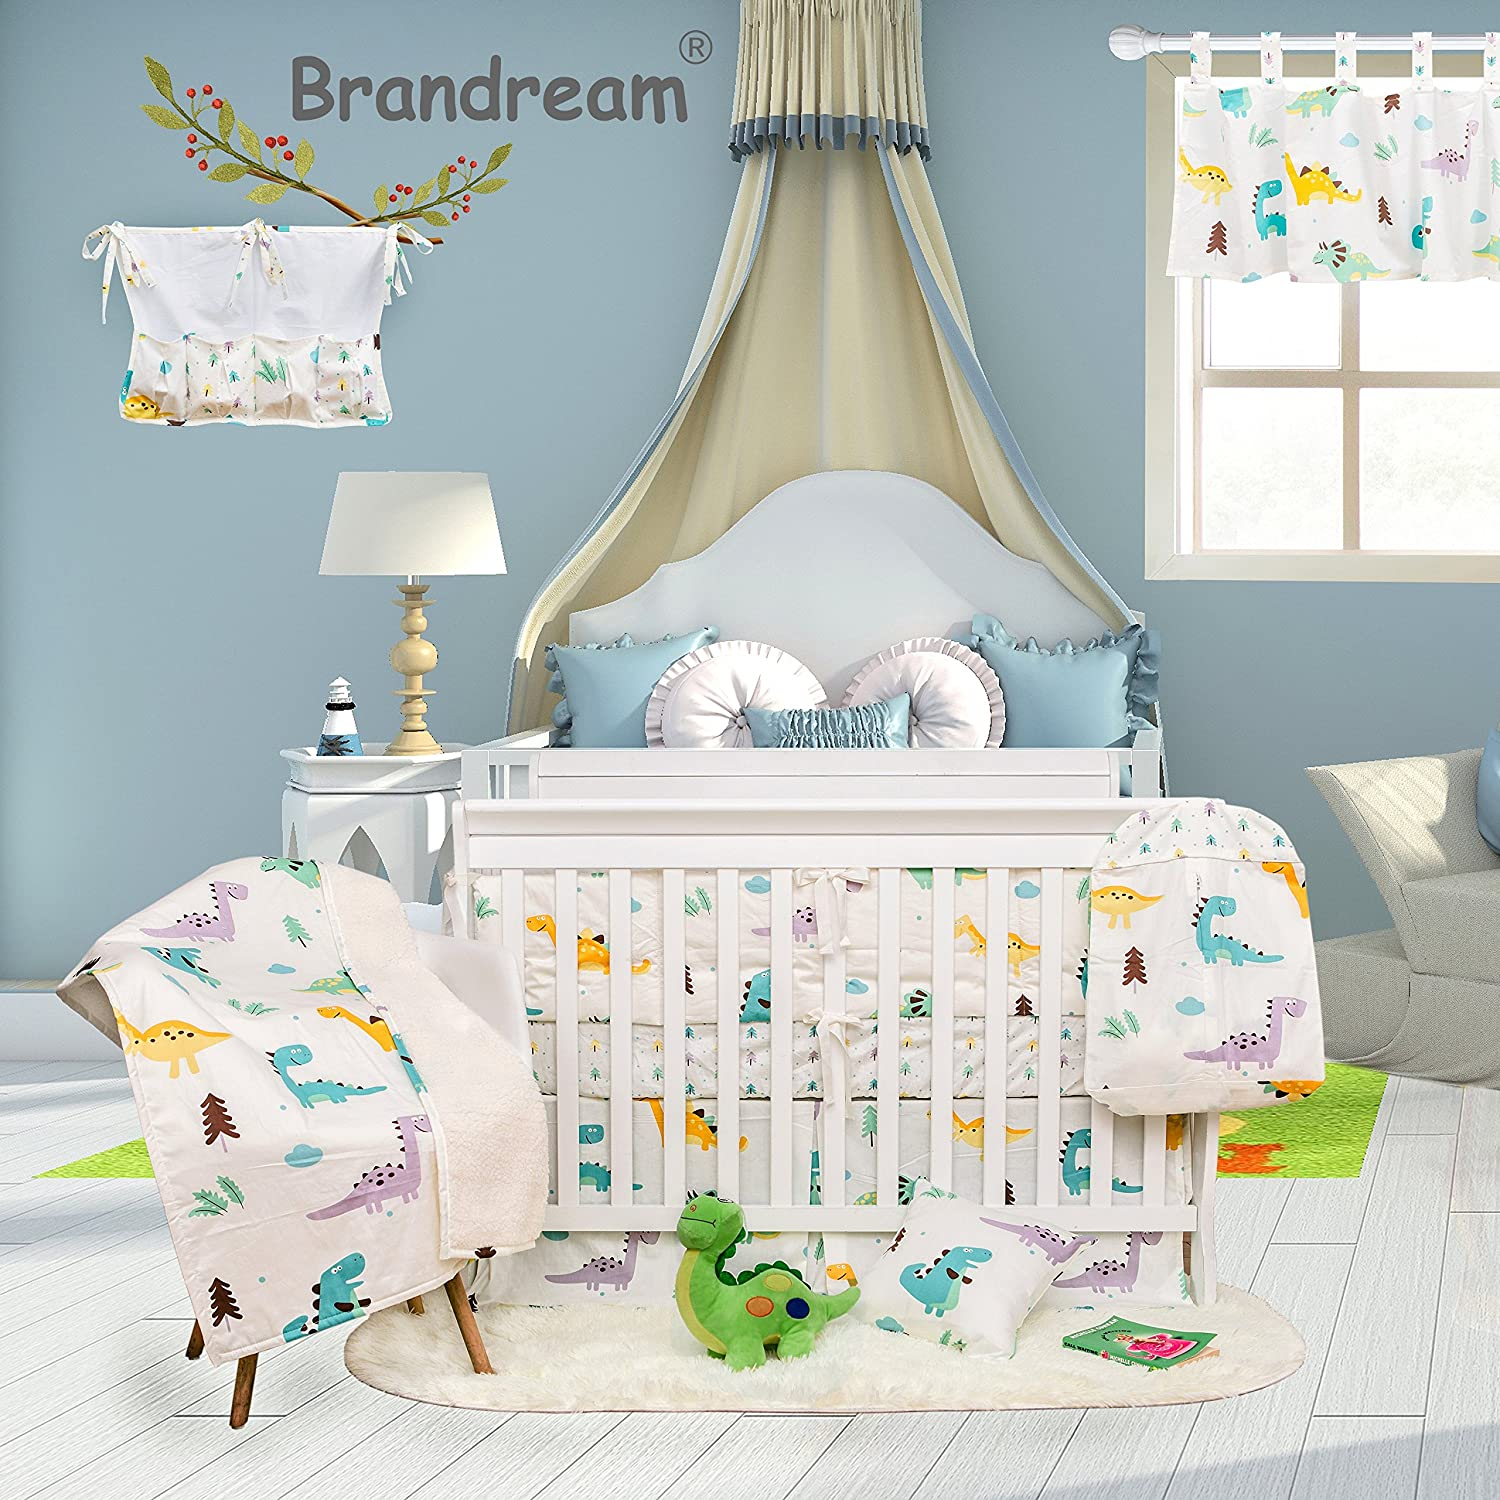 Brandream Dinosaur Crib Bedding Sets for Boys with Bumper Pads 100% Hypoallergenic Cotton Baby Nursery Bedding Set 11 Pieces